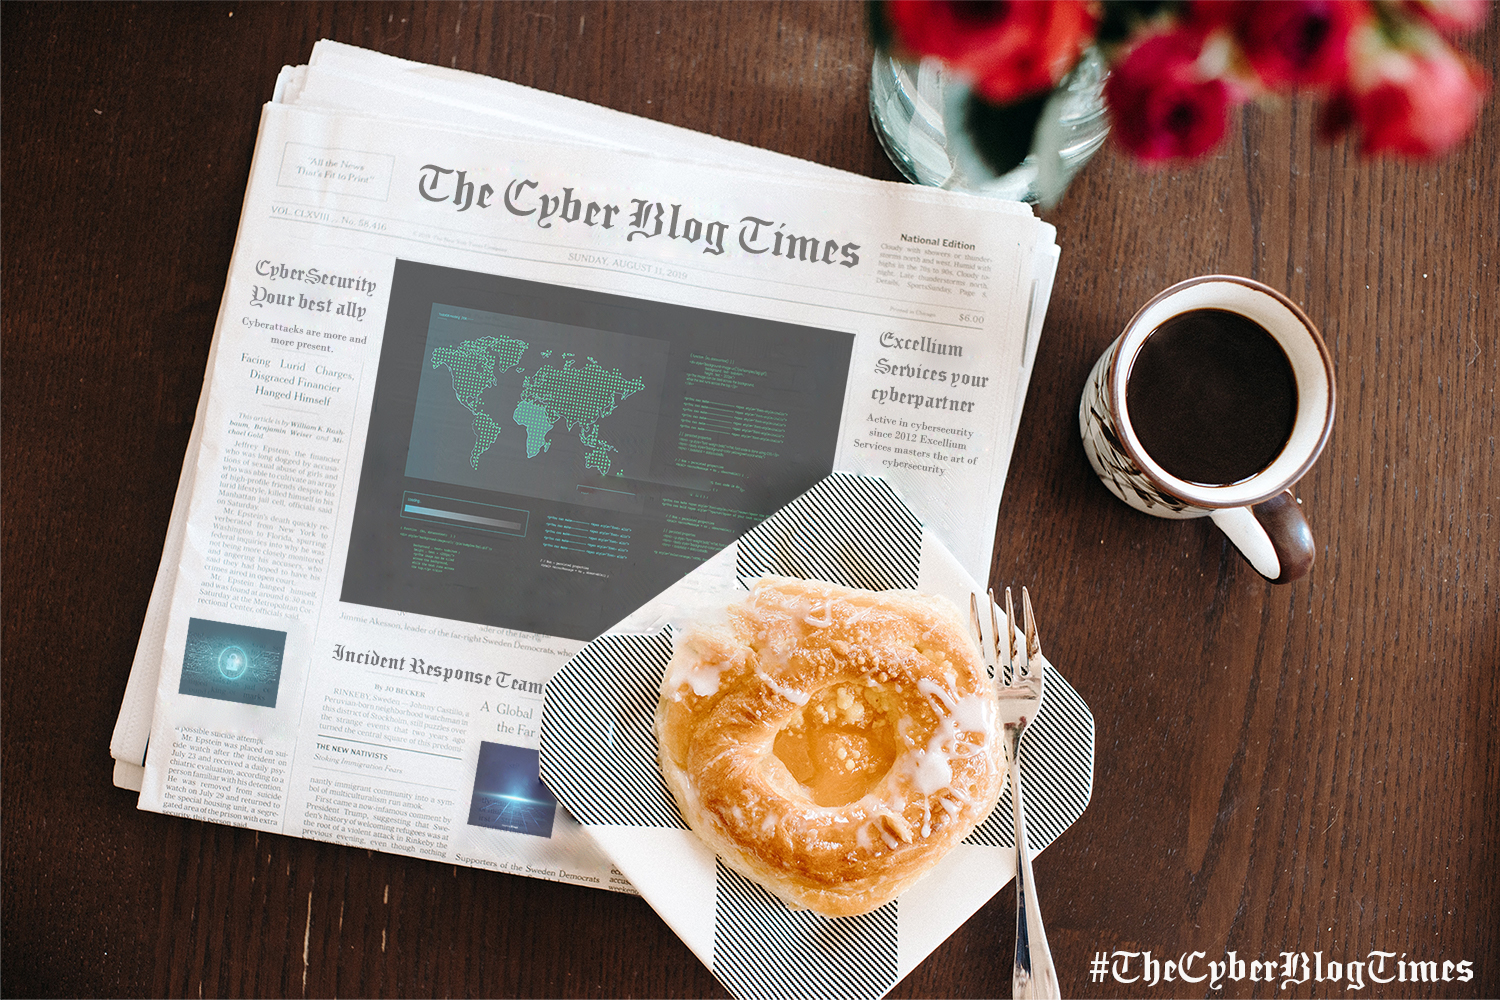 The Cyber Blog Times newspaper displayed on a table with a cup of coffee